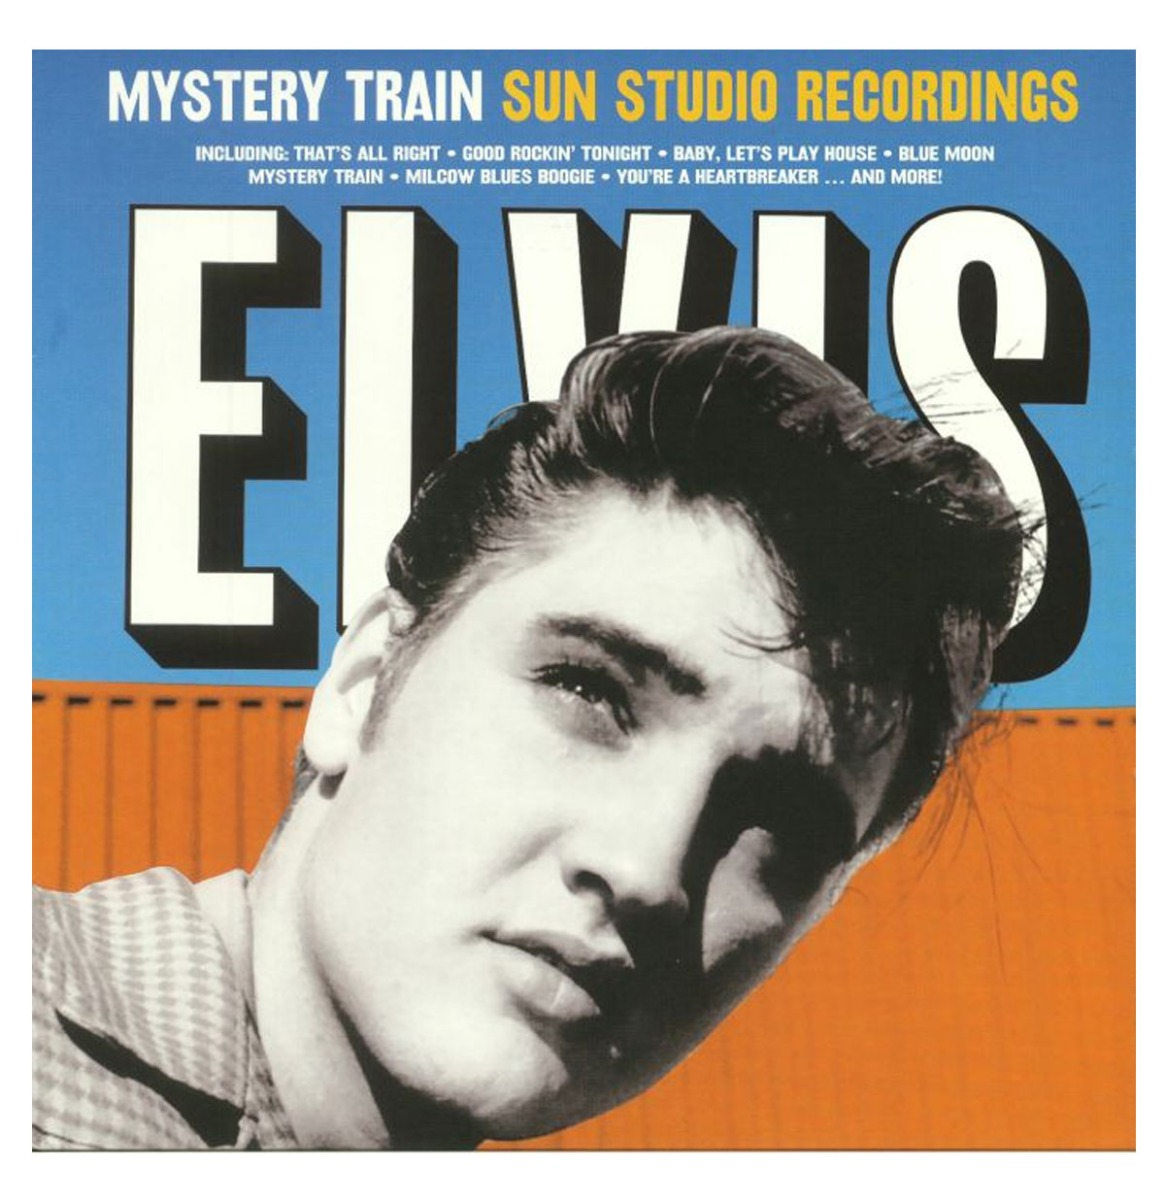 Elvis Presley - Mystery Train Sun Studio Recordings LP